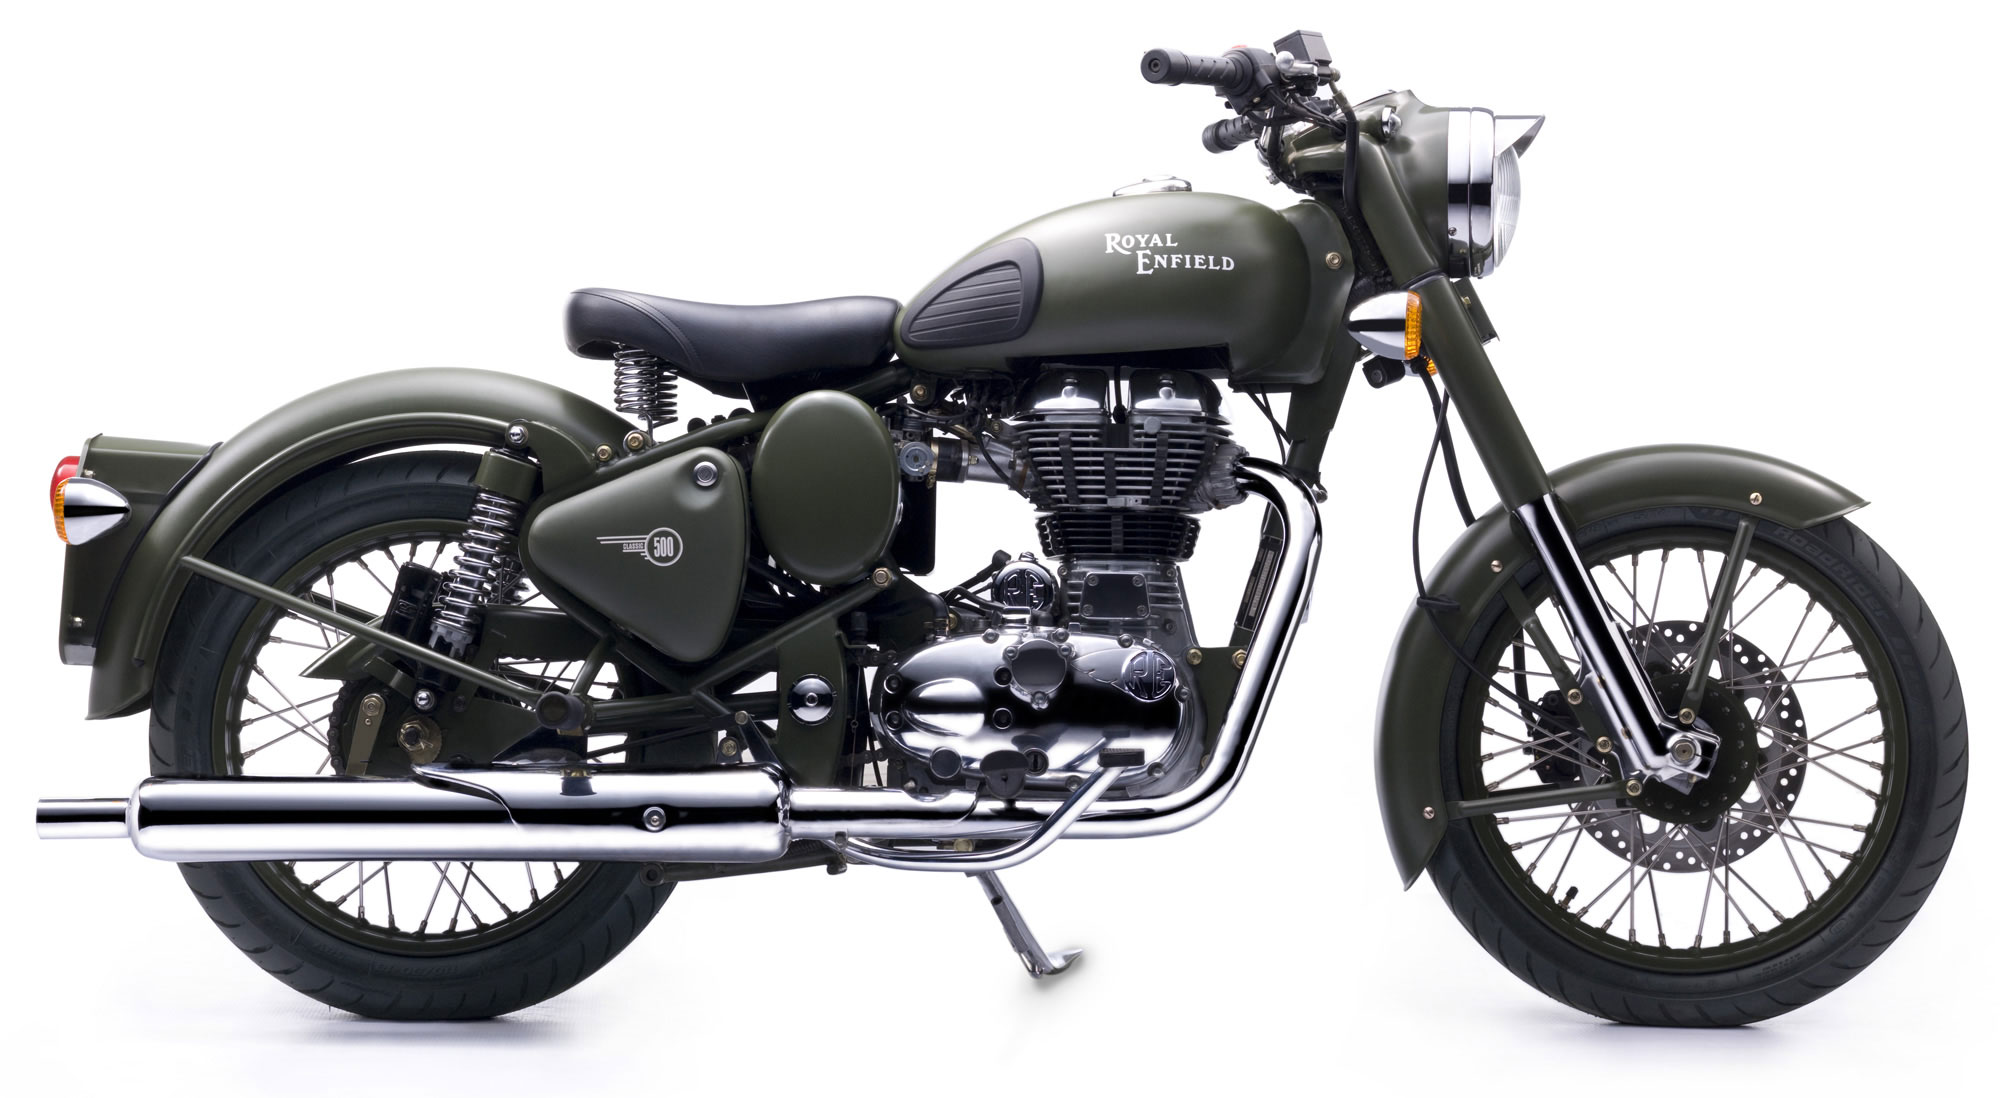 Royal Enfield Bullet 500 Army 2003 images #123830